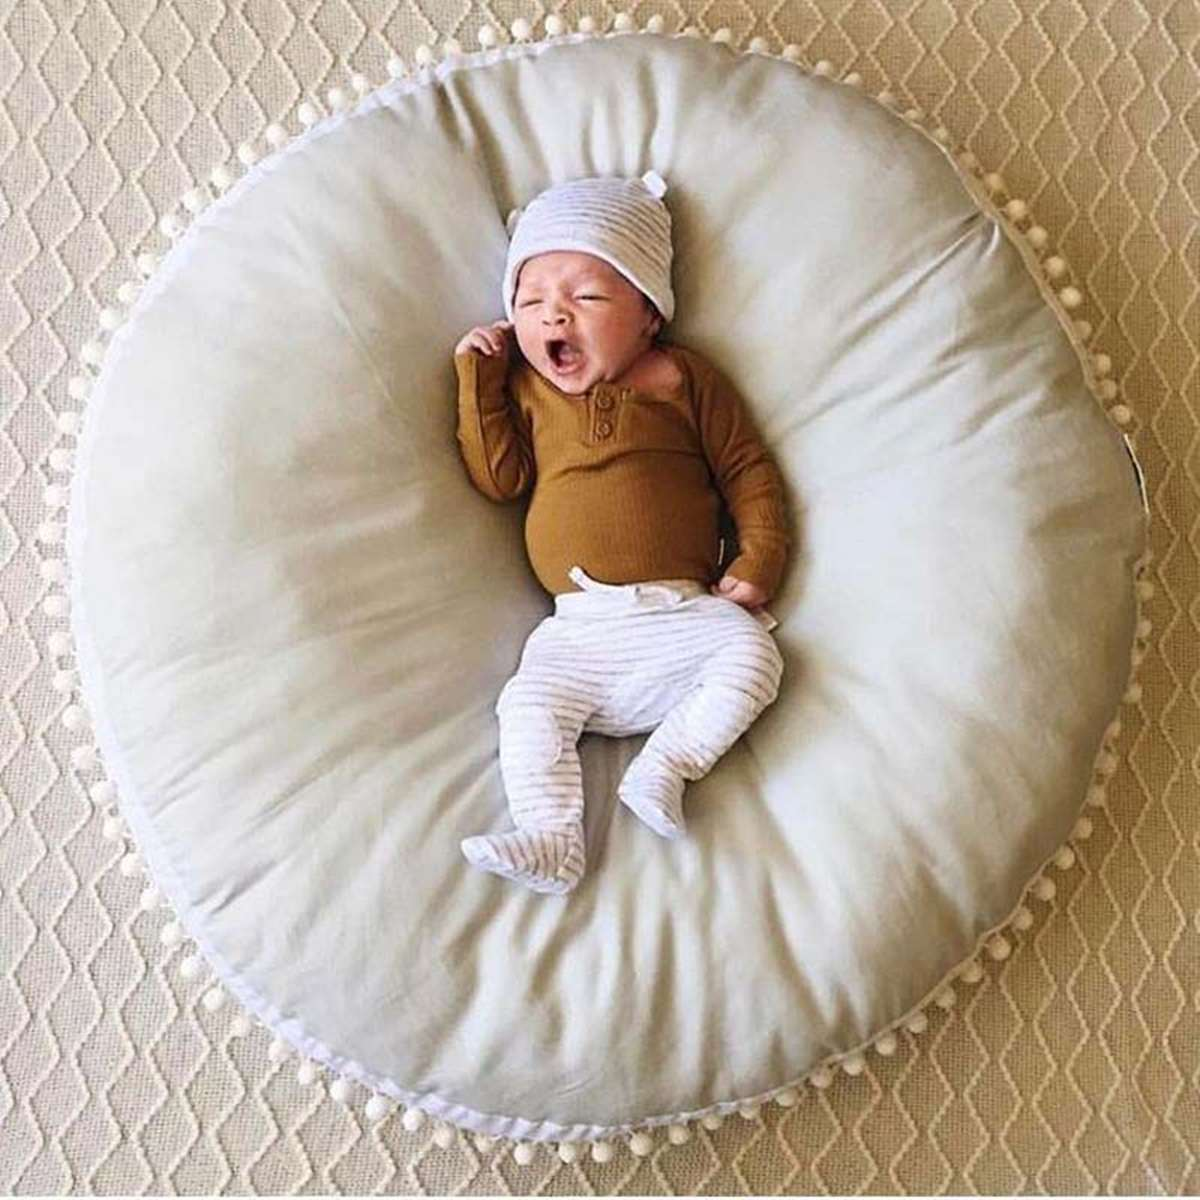 2019 Baby bean bag chair Cotton Round Soft Play Mats Crawling Pad Play Mat Home Children Kids Room Decor 90*90cm Yellow Grey